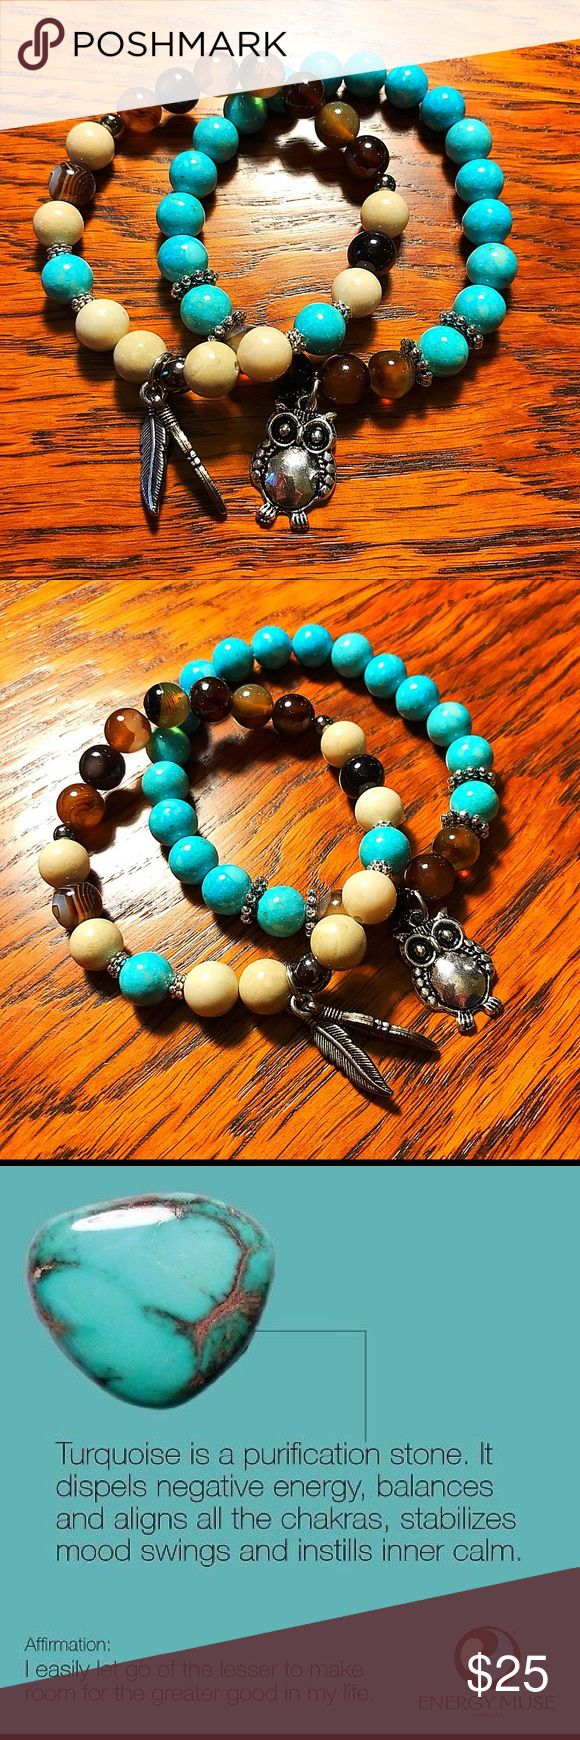 Turquoise and Tiger Eye Chakra Gemstone bracelets Stress relieving bracelets. Turquoise and Tiger-eye paired to help combat stress and produce an inner calm. 🙏🏻 Who couldn't use that?? Lol! Adorned with an owl for wisdom to make the right choices and feathers just because I liked them🙃!!! Sold as set none Jewelry Bracelets